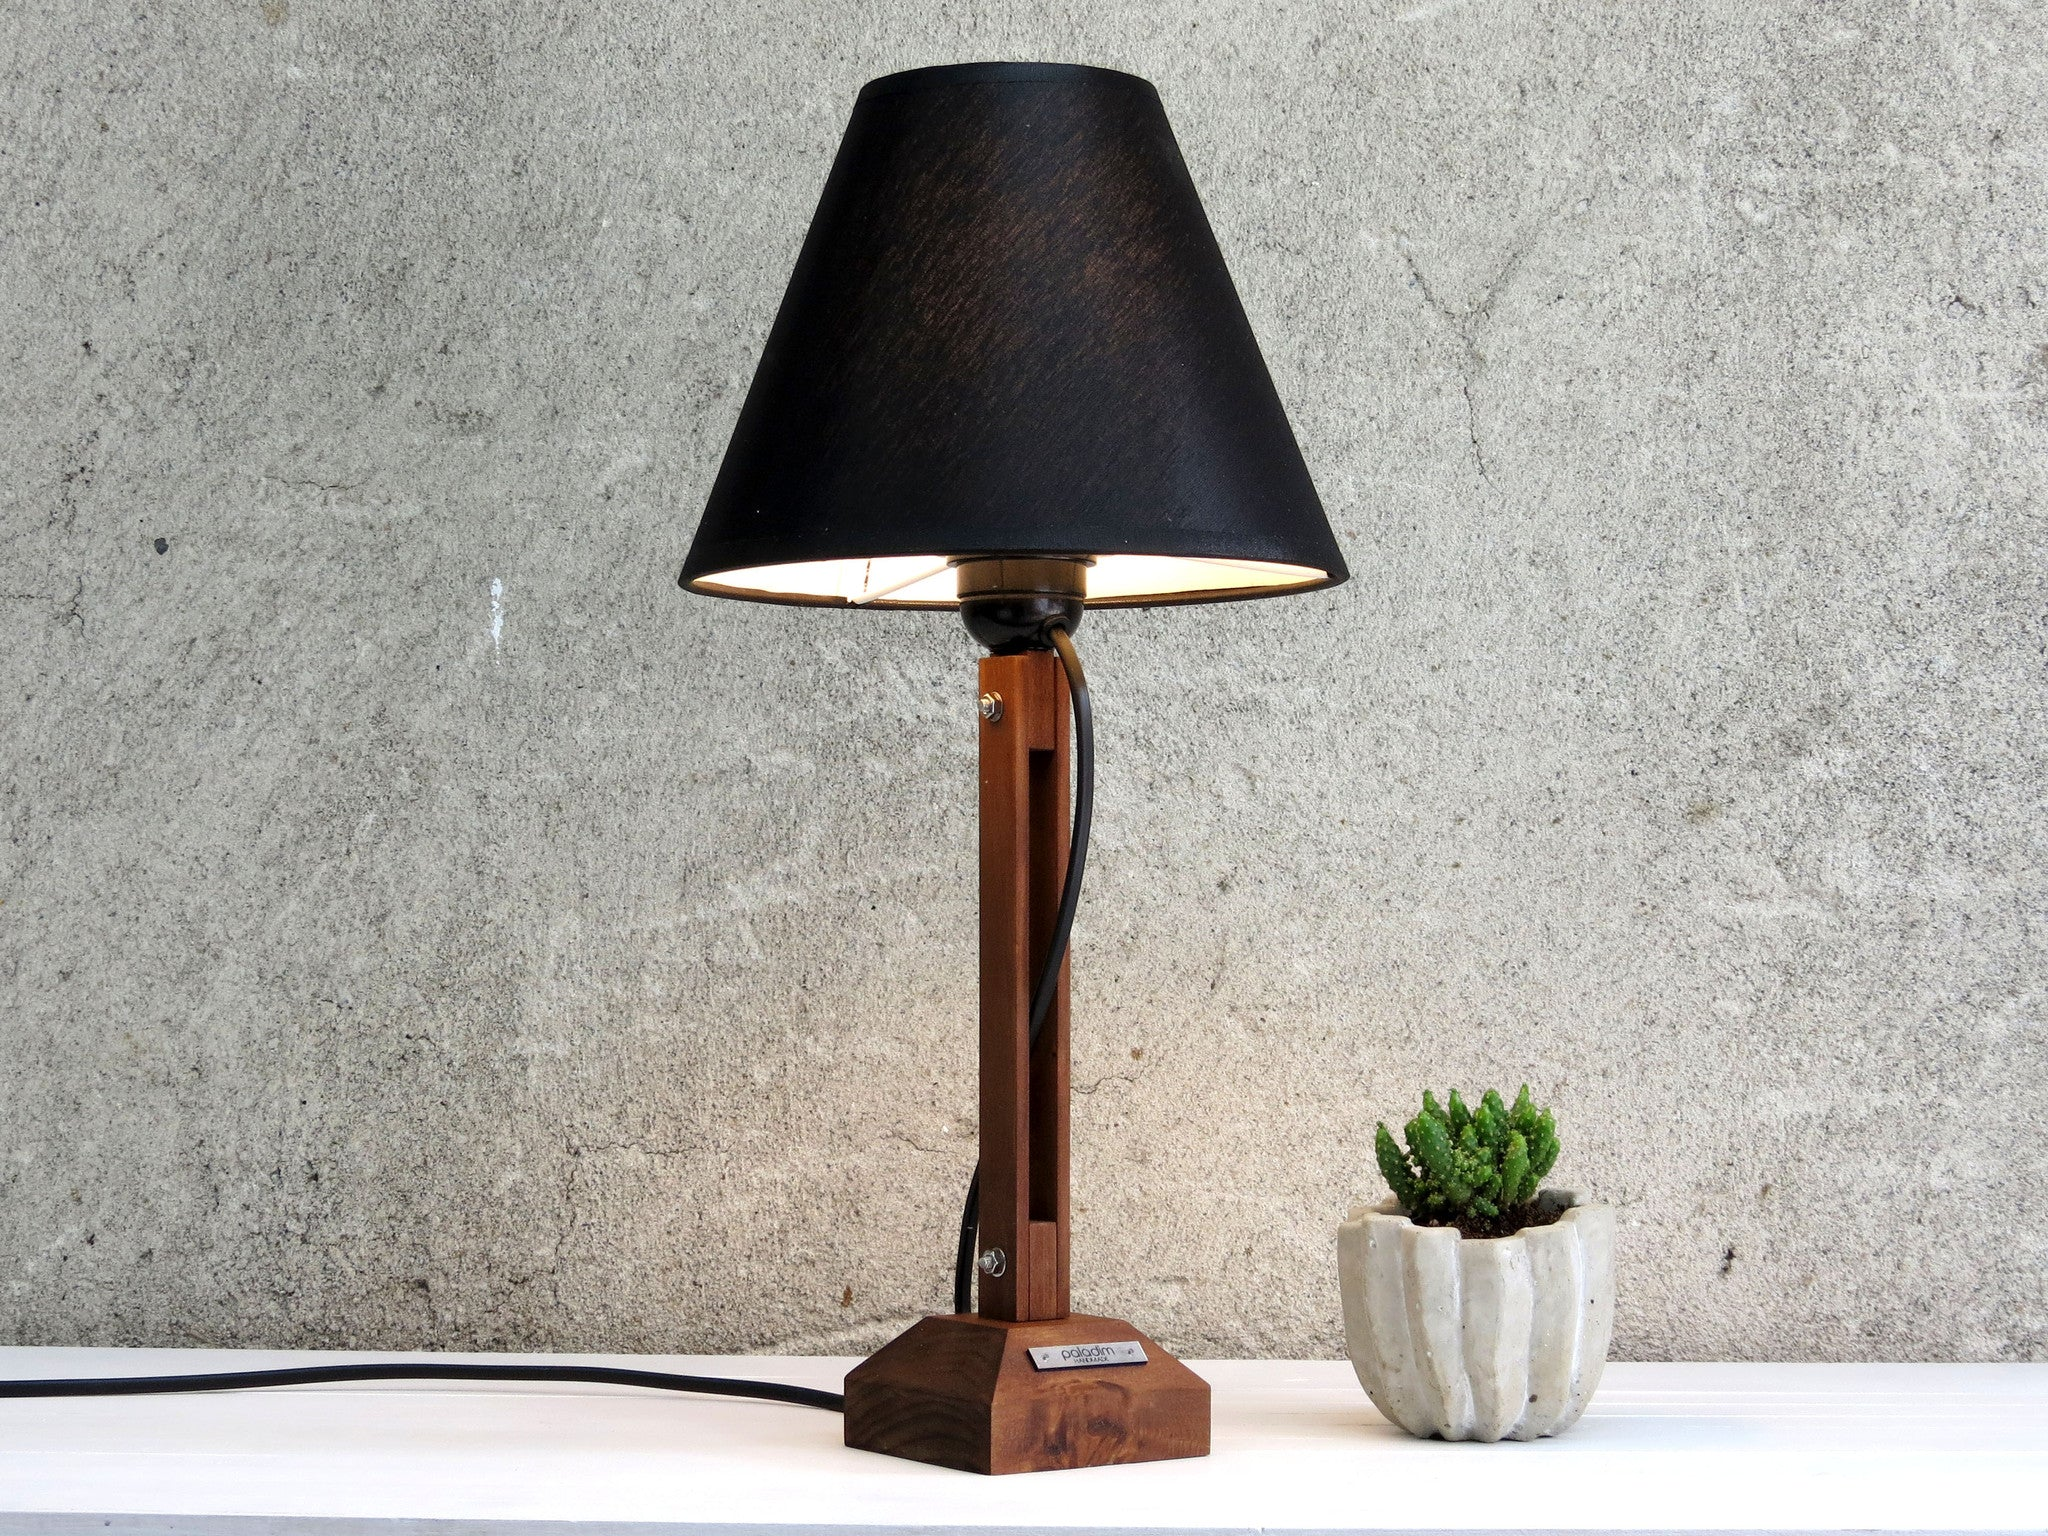 Koll i wooden table lamp paladim handmade koll i wooden table lamp paladim handmade geotapseo Choice Image